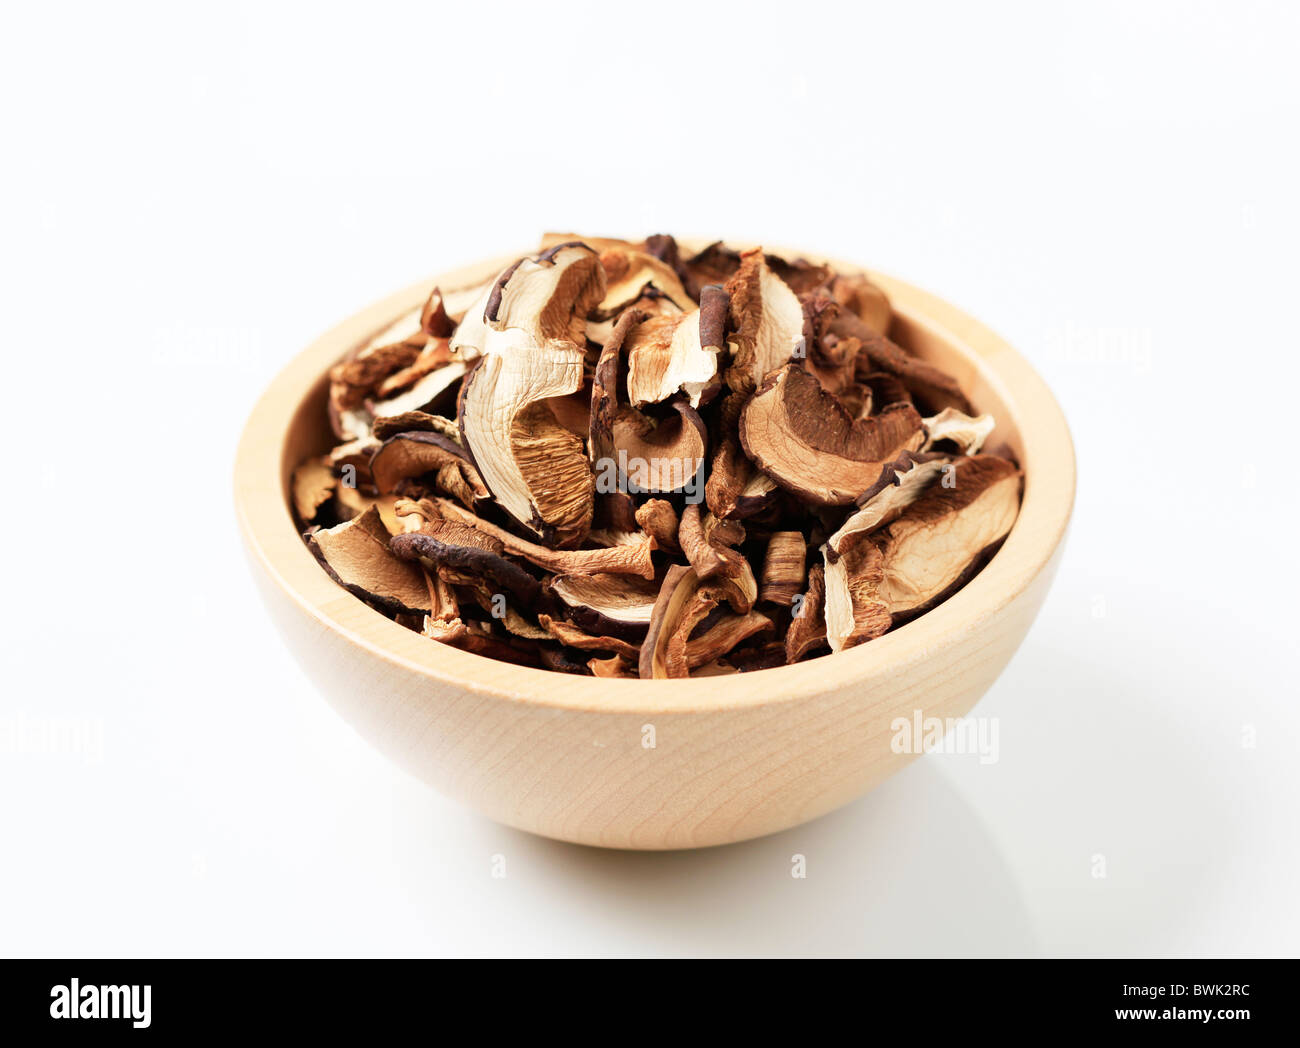 Dried mushrooms in a wooden bowl - Stock Image